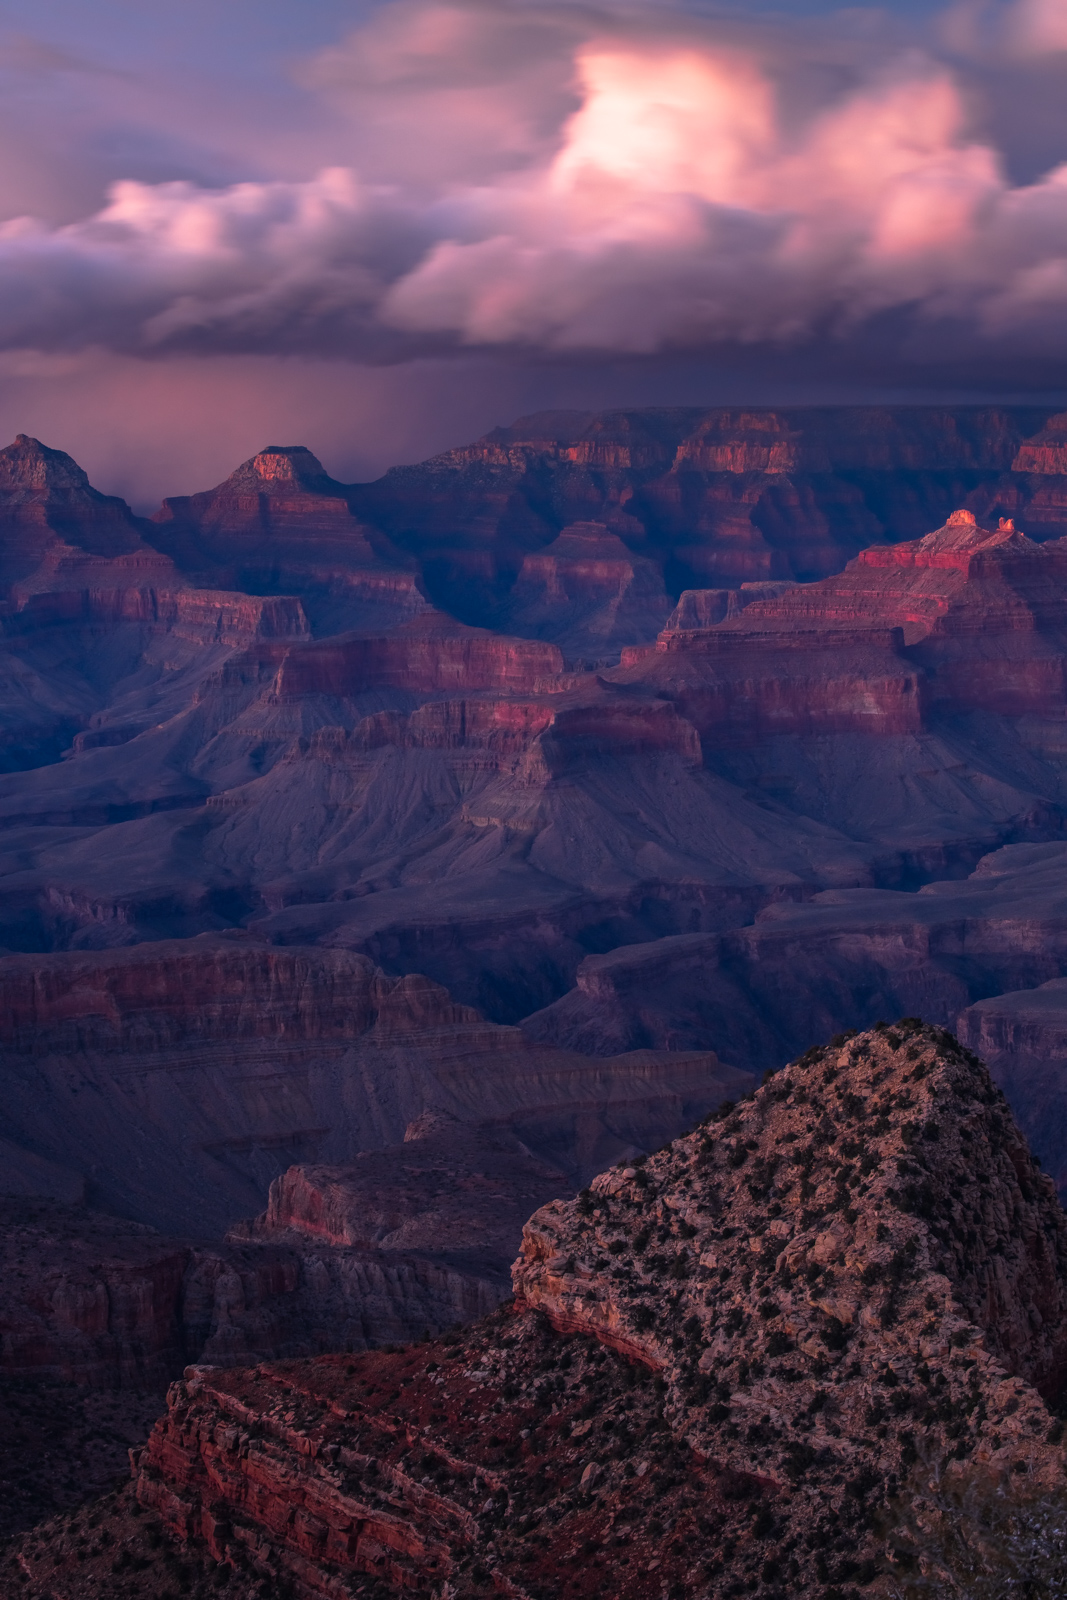 A winter storm at sunset over the Grand Canyon from the South Rim.